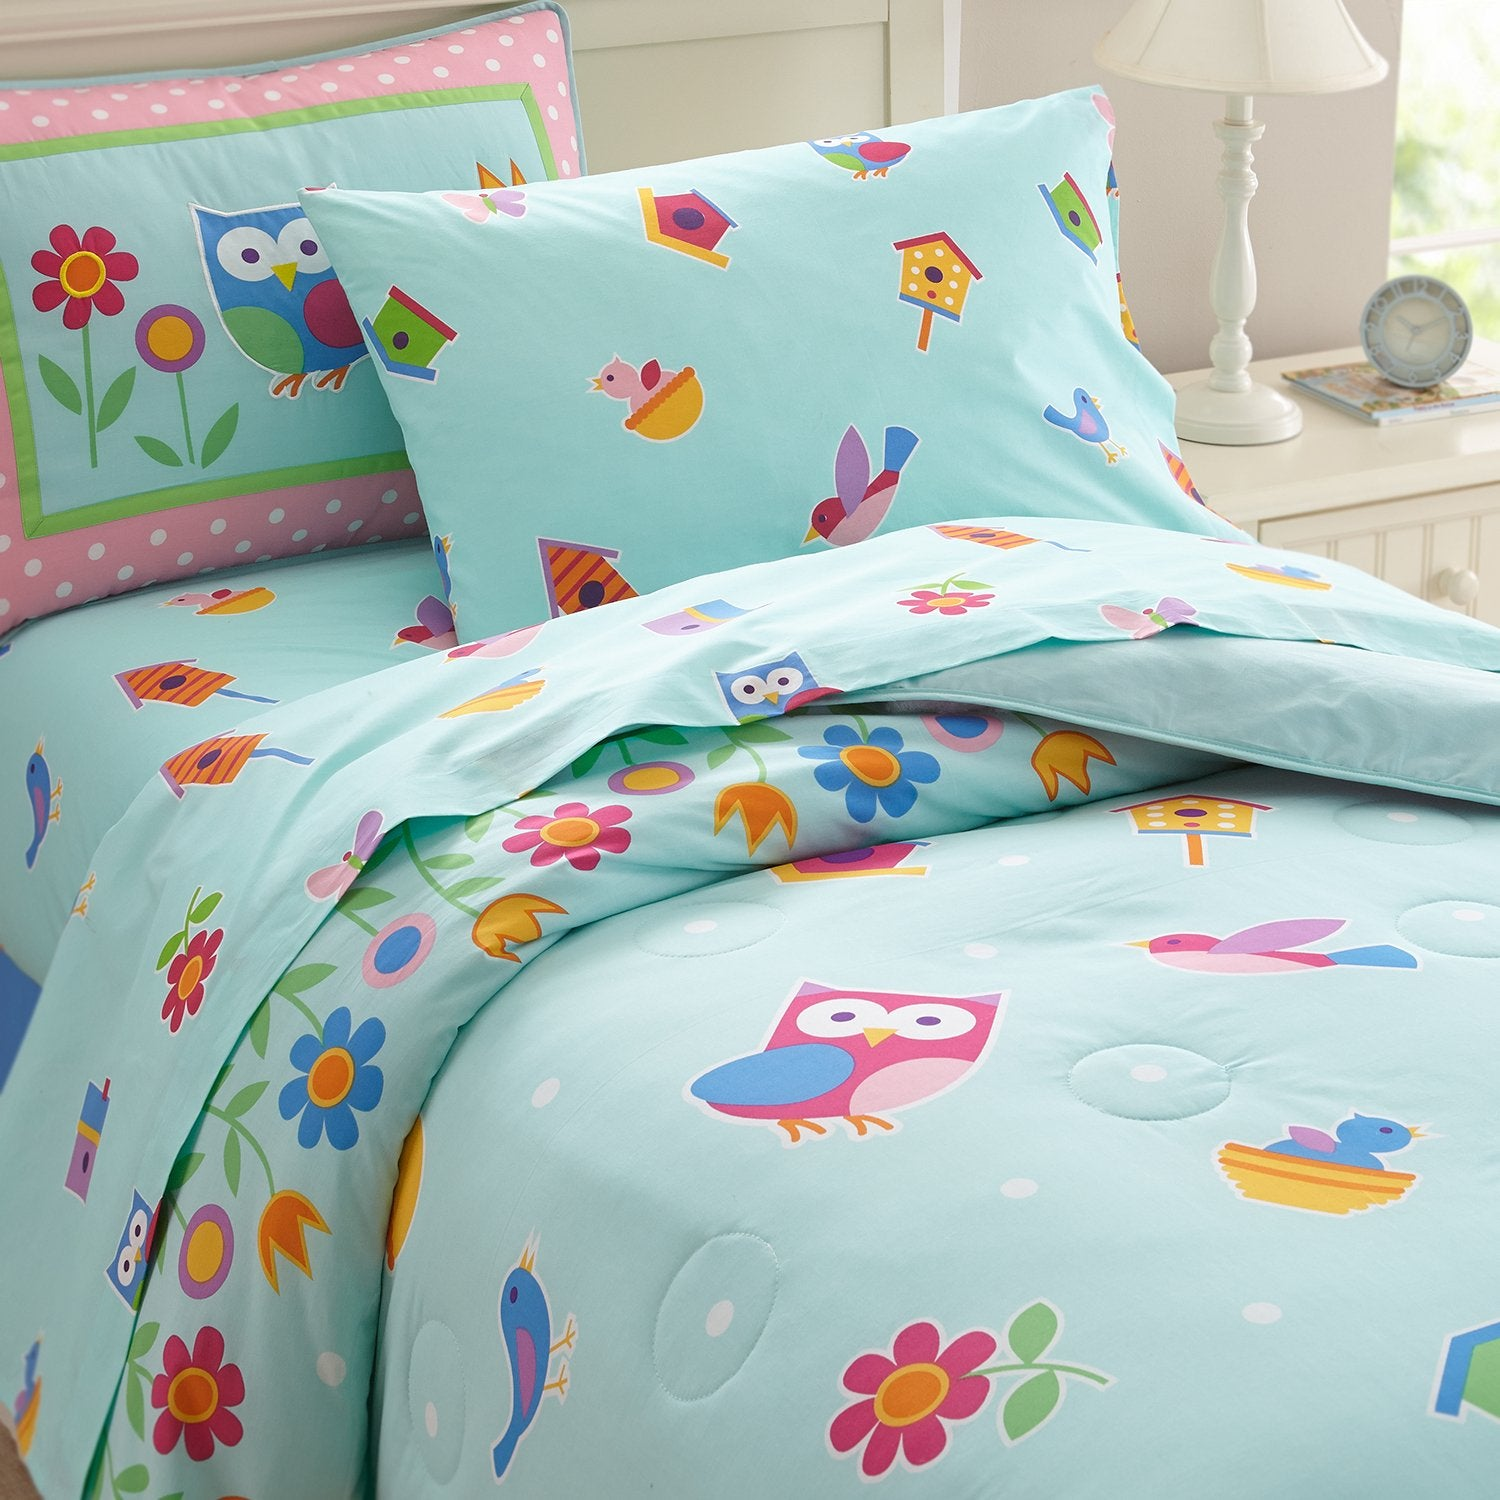 Birdie Comforter Set with Sheets